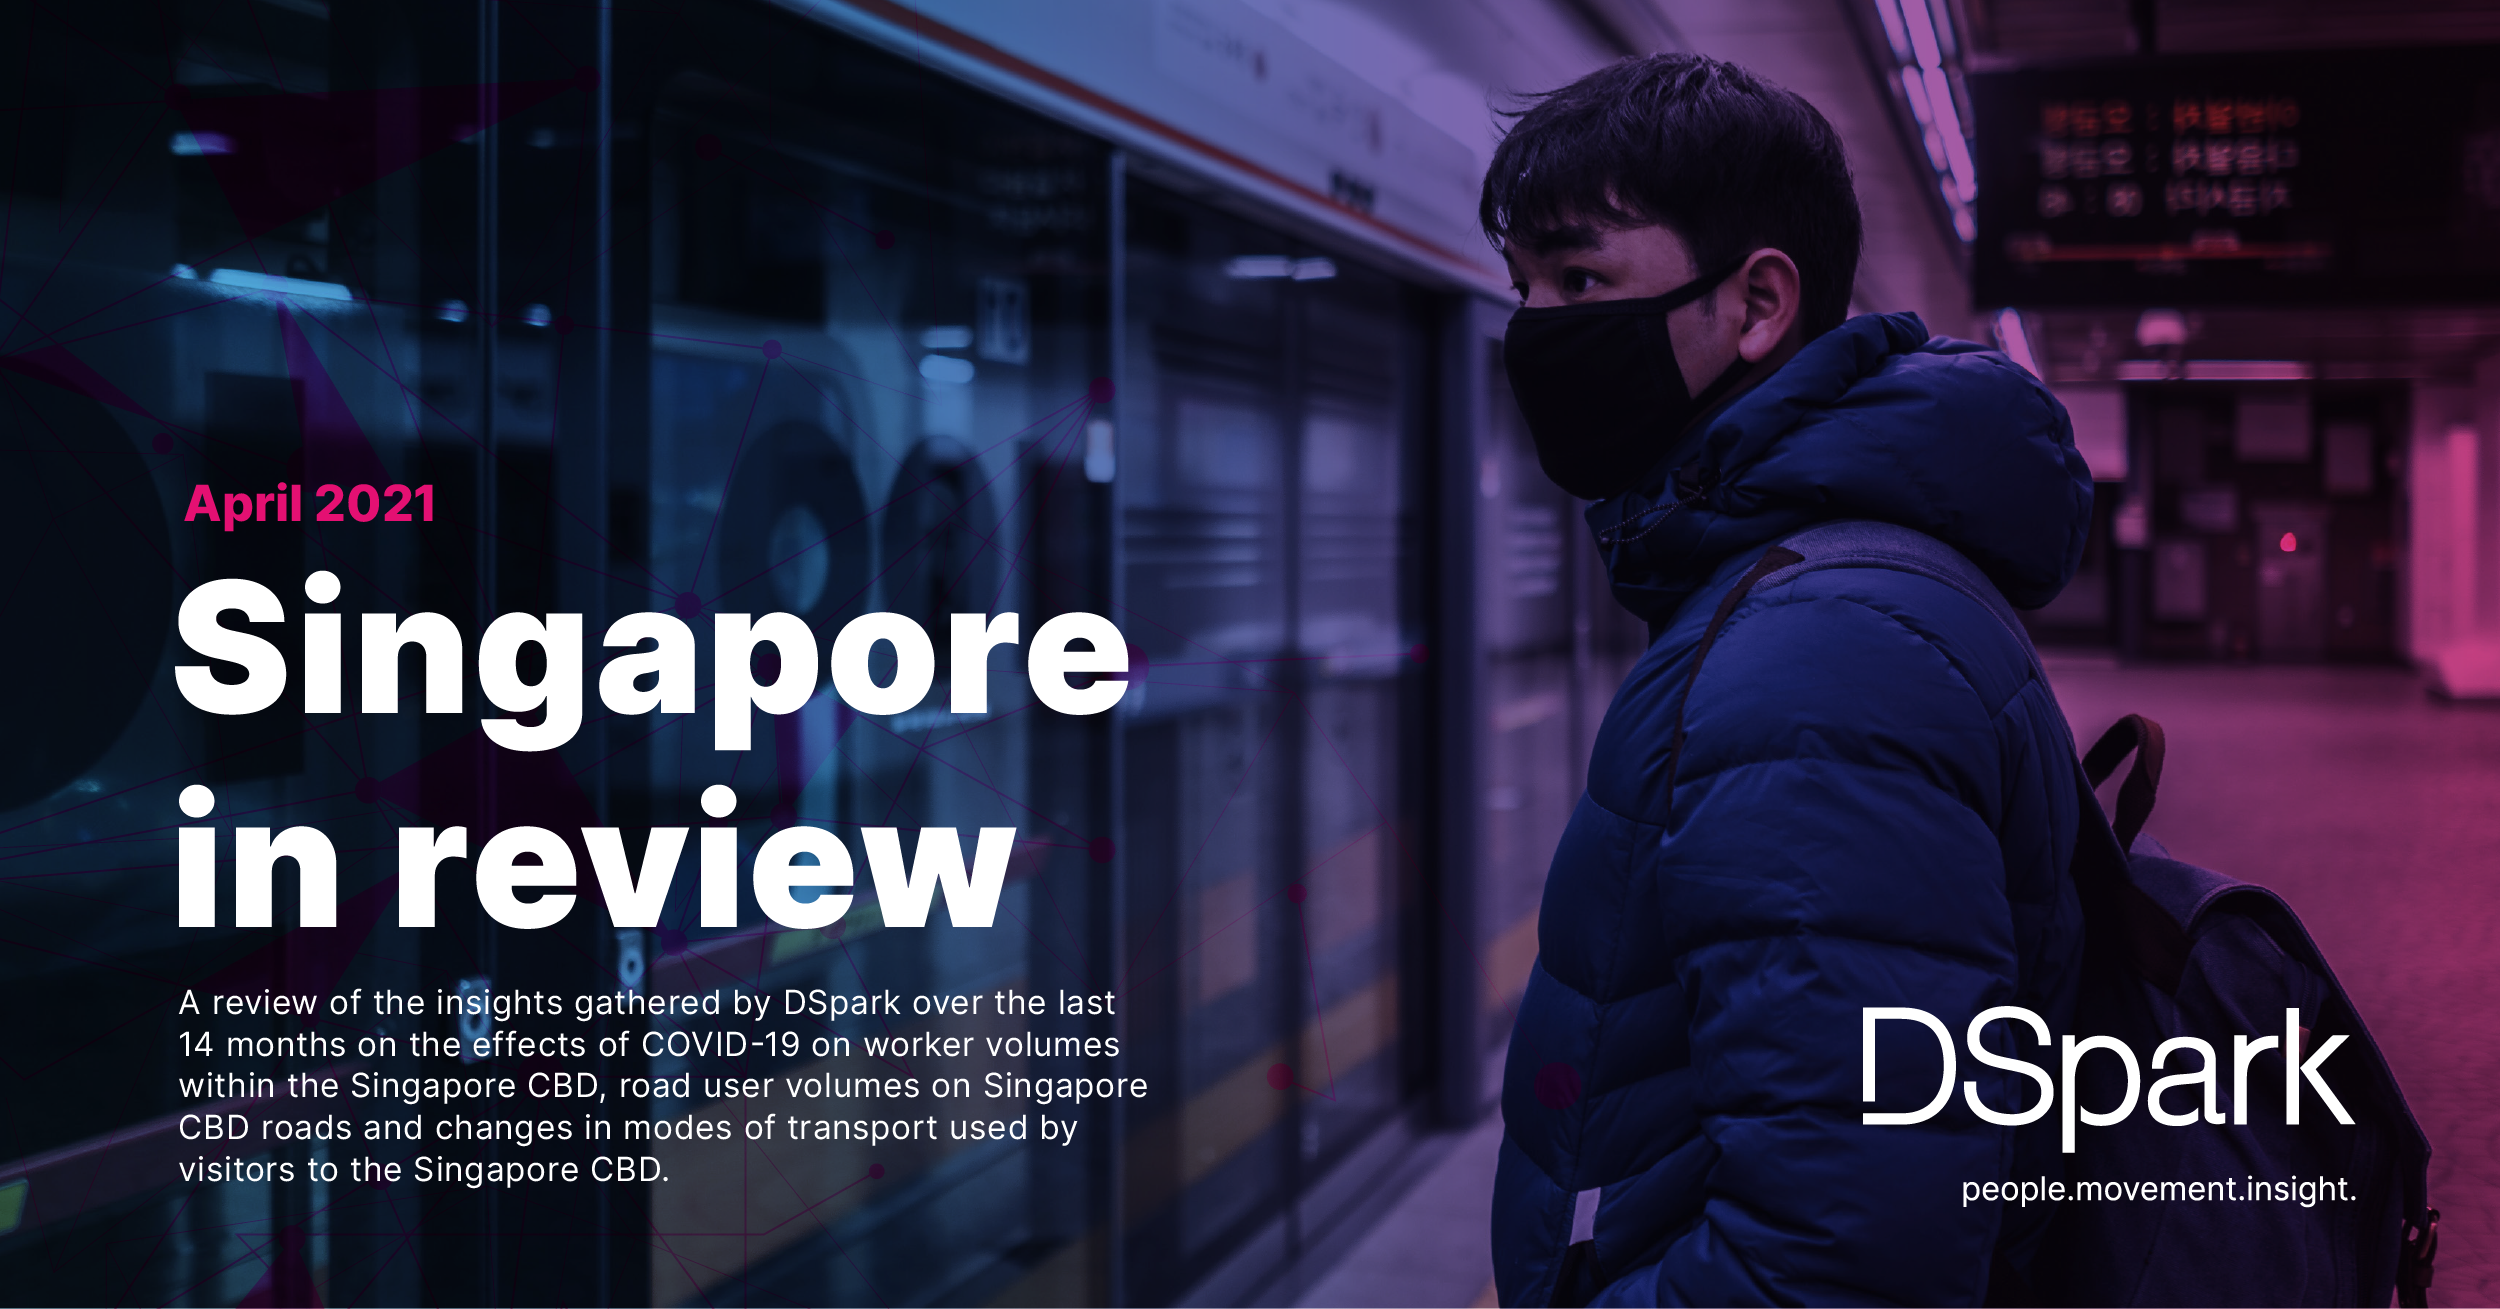 DSpark Singapore in review